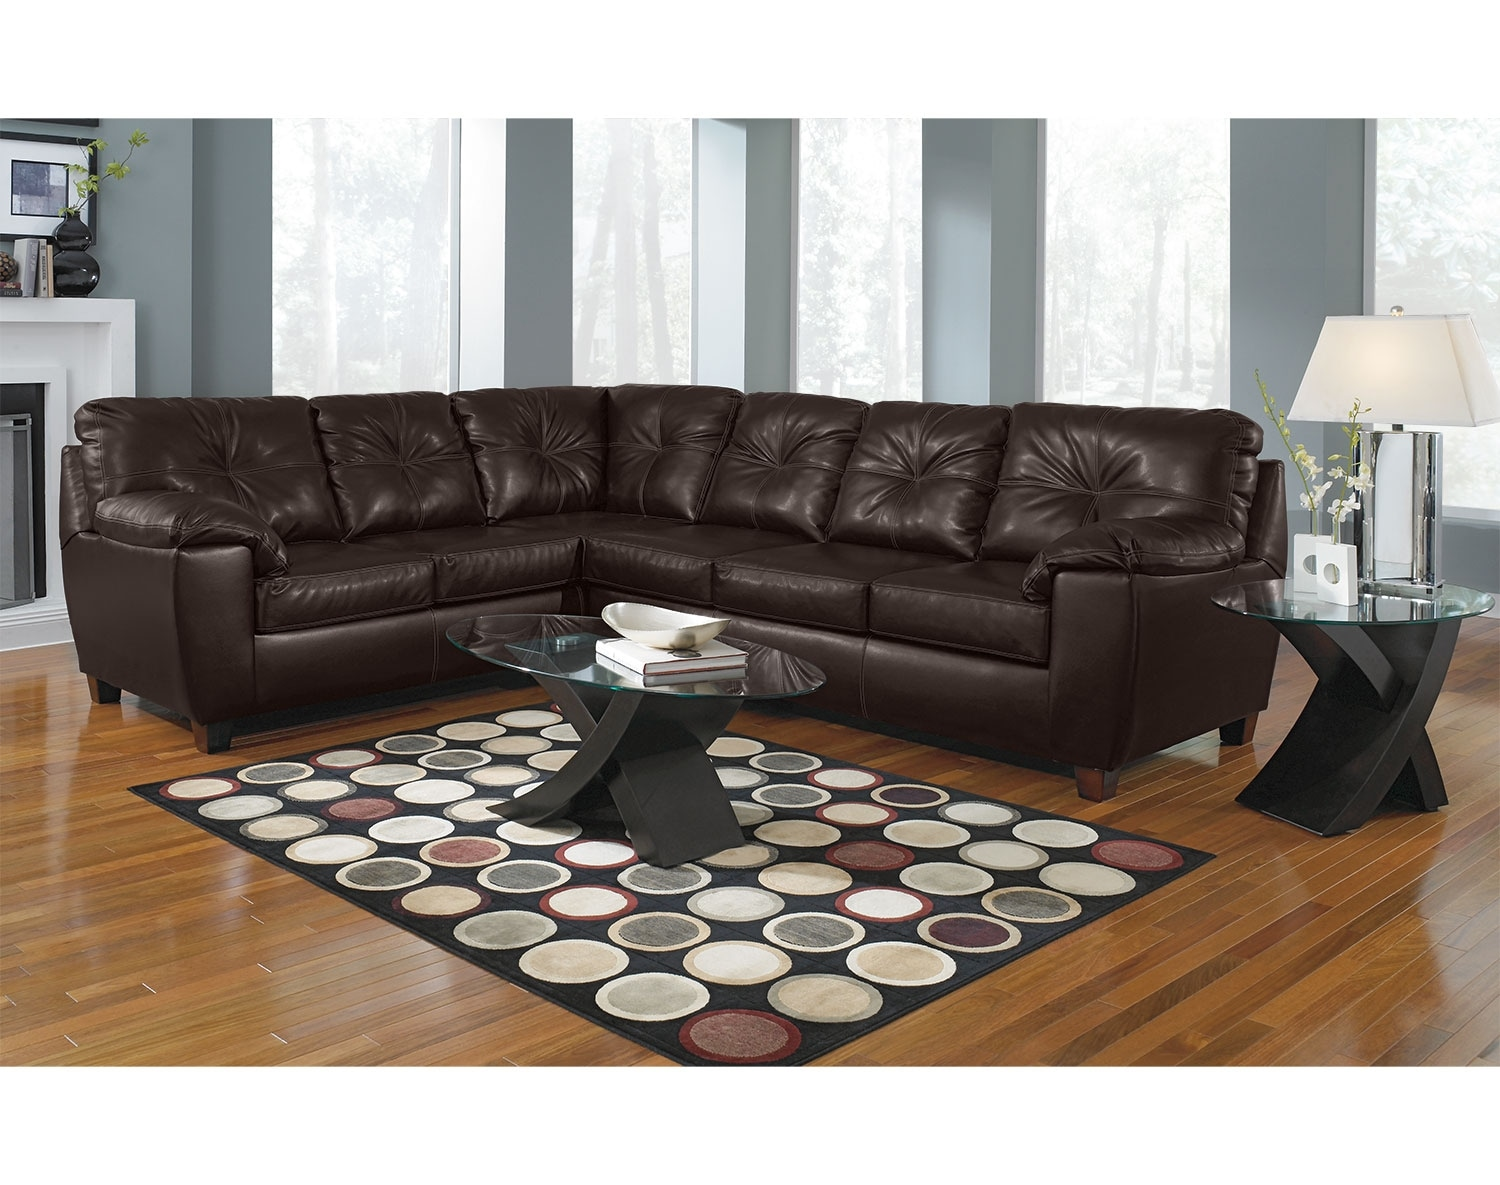 The Rialto Brown Sectional Collection